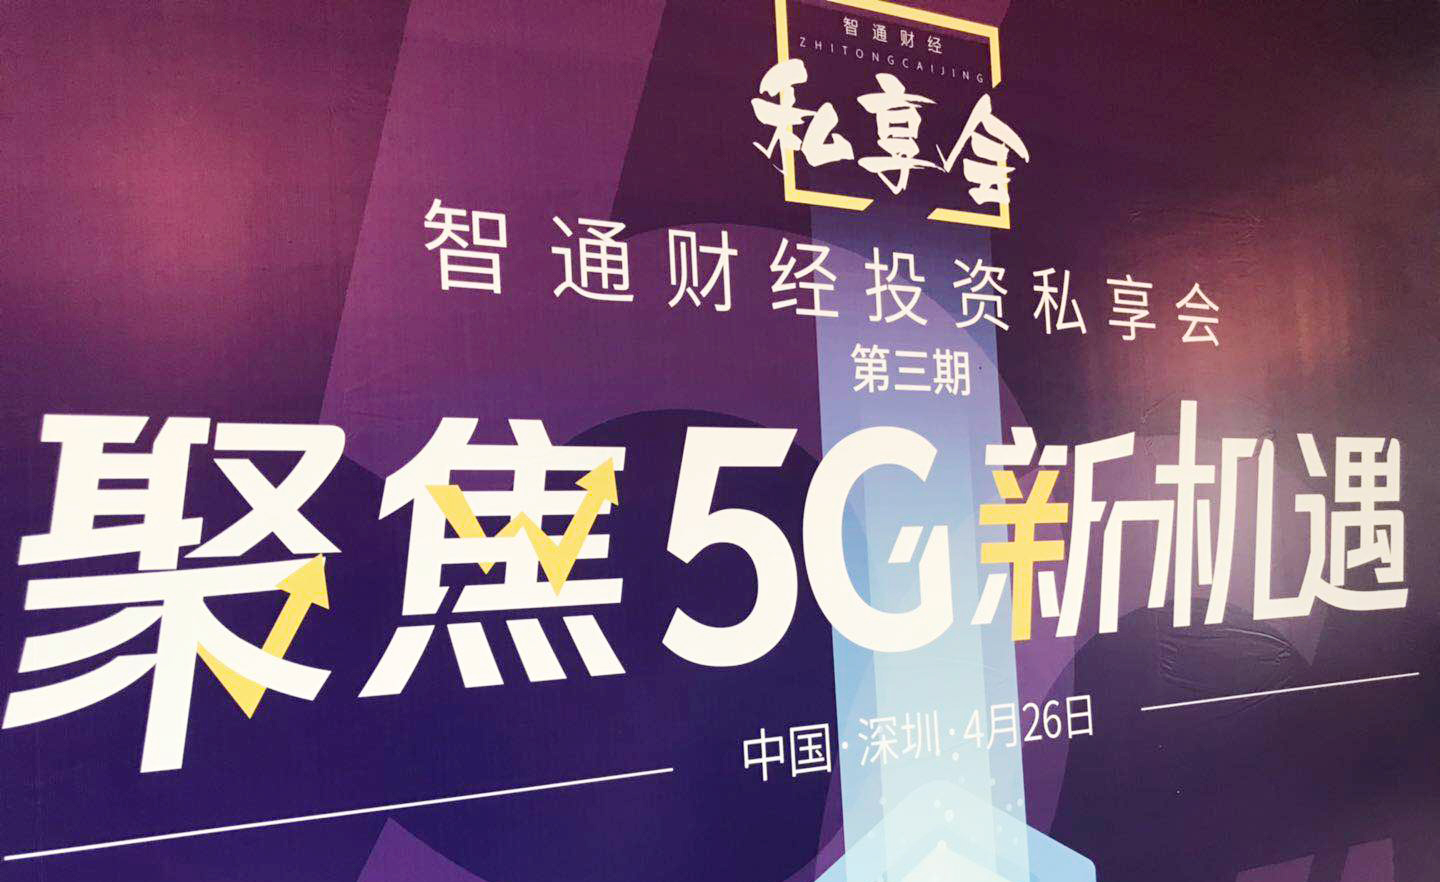 Hong Kong dafei holdings (01826.hk) was invited to attend the